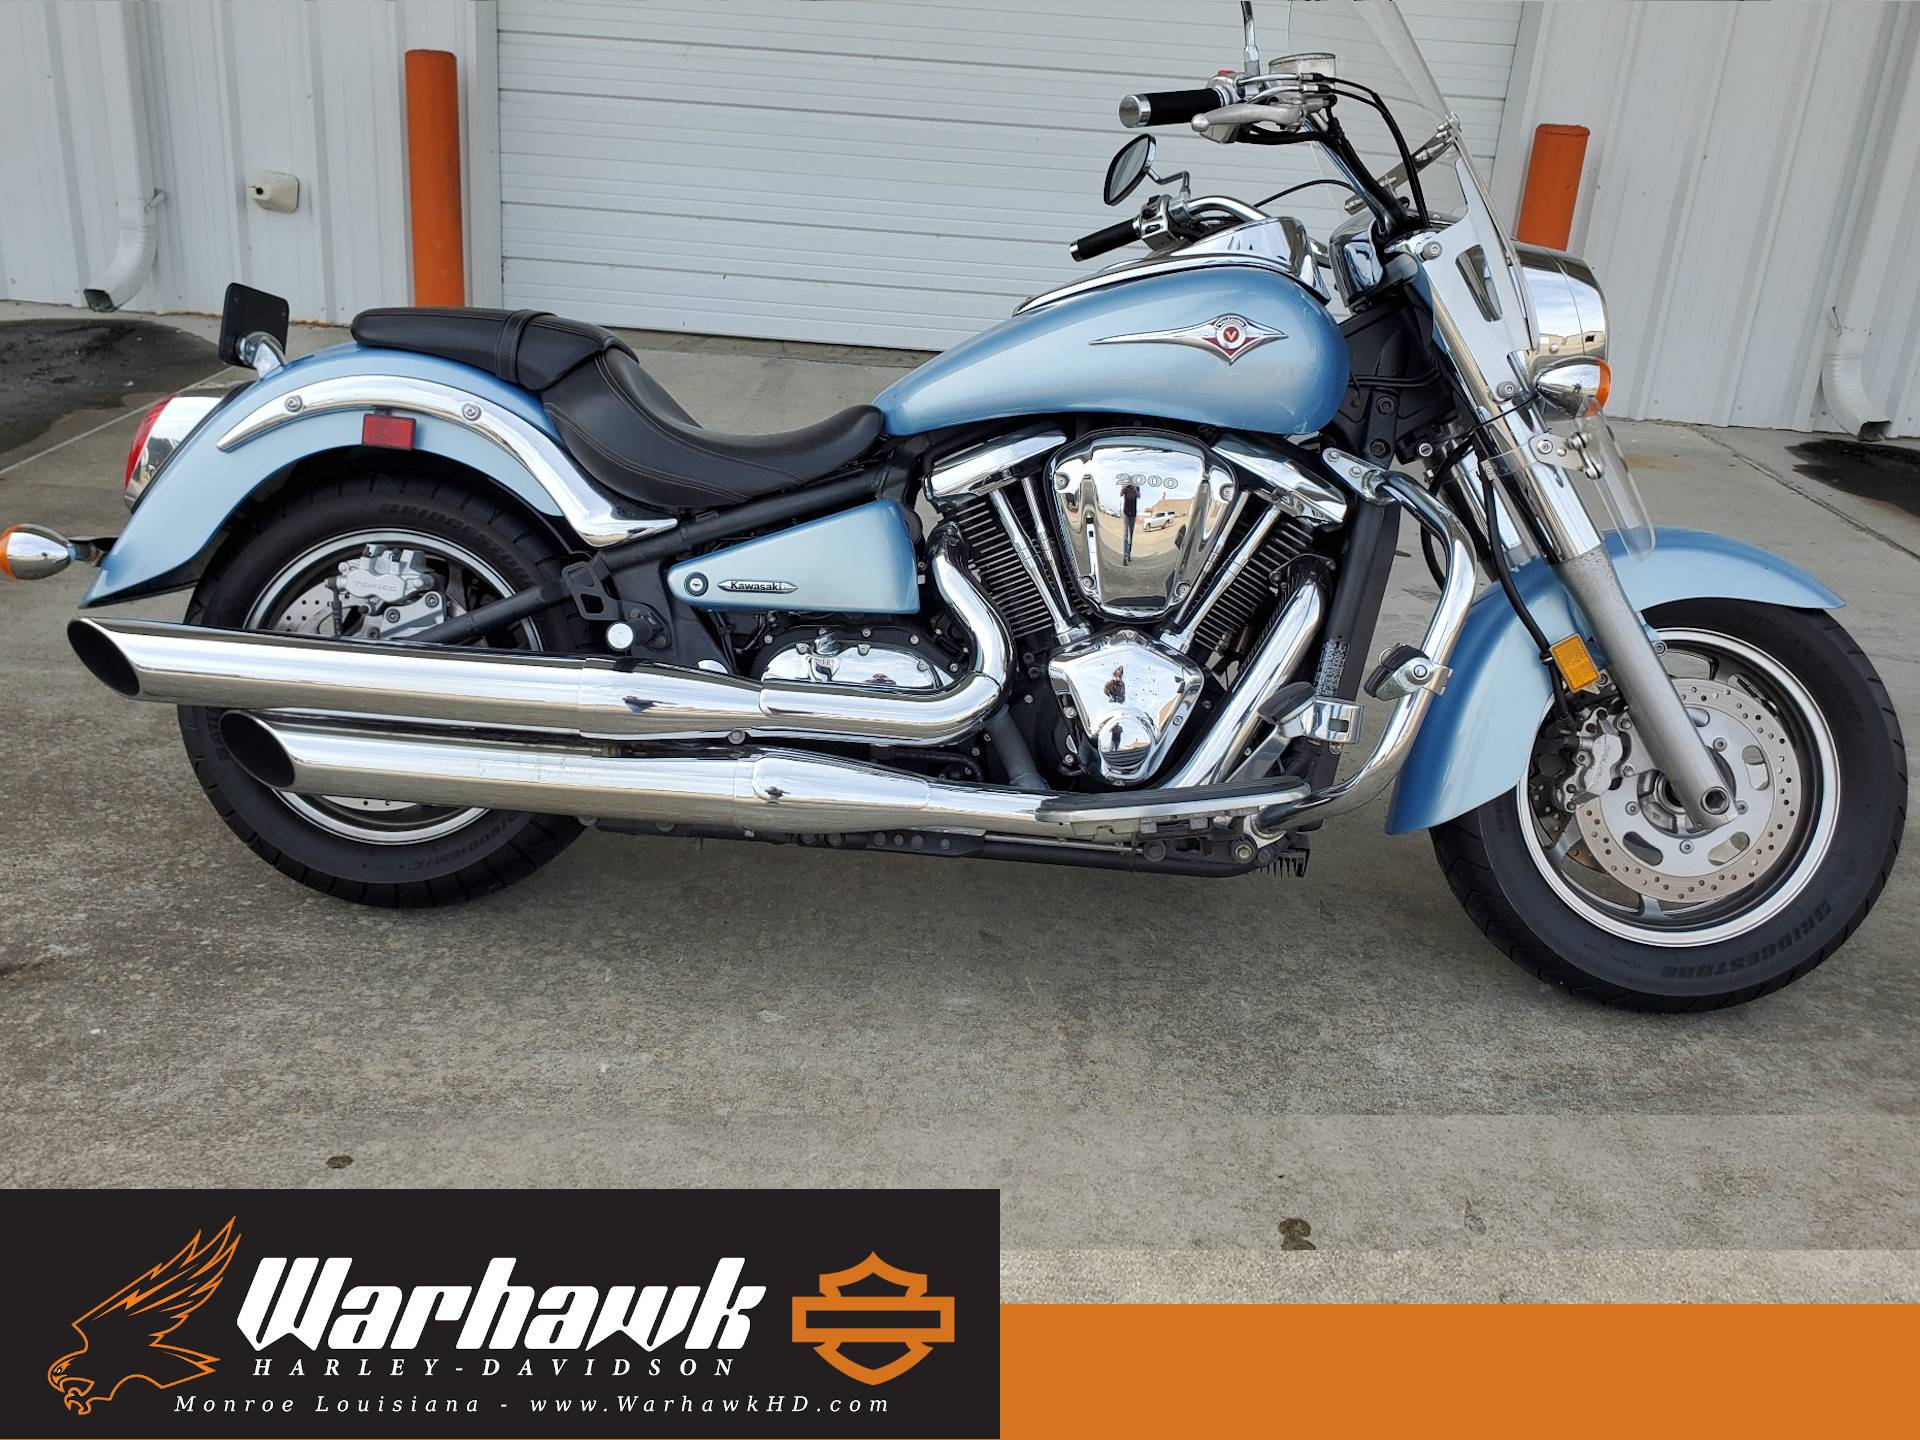 2004 kawasaki vulcan 2000 for sale near me - Photo 1